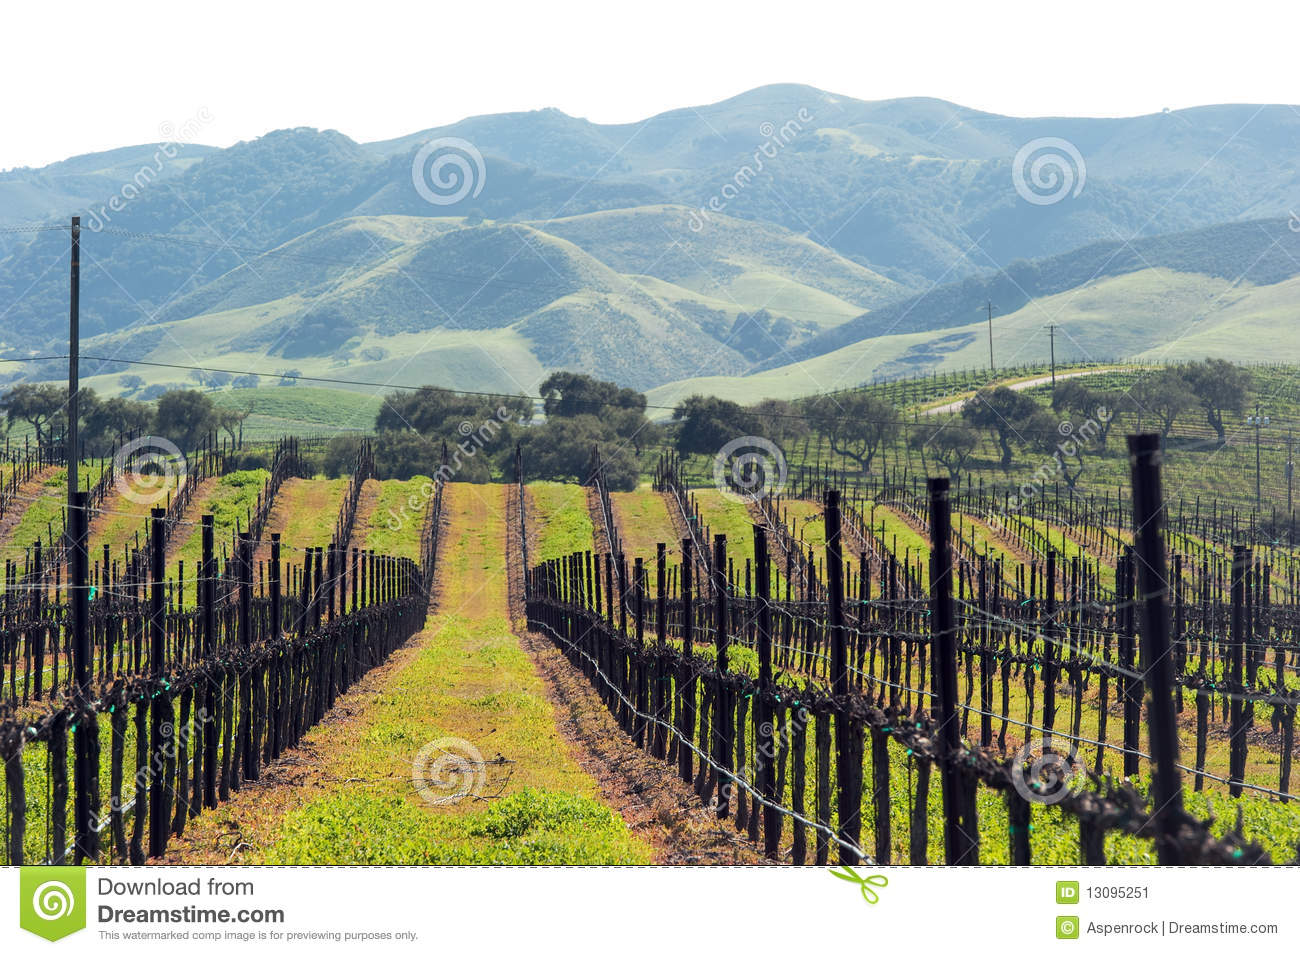 Winter grape vines ready for spring